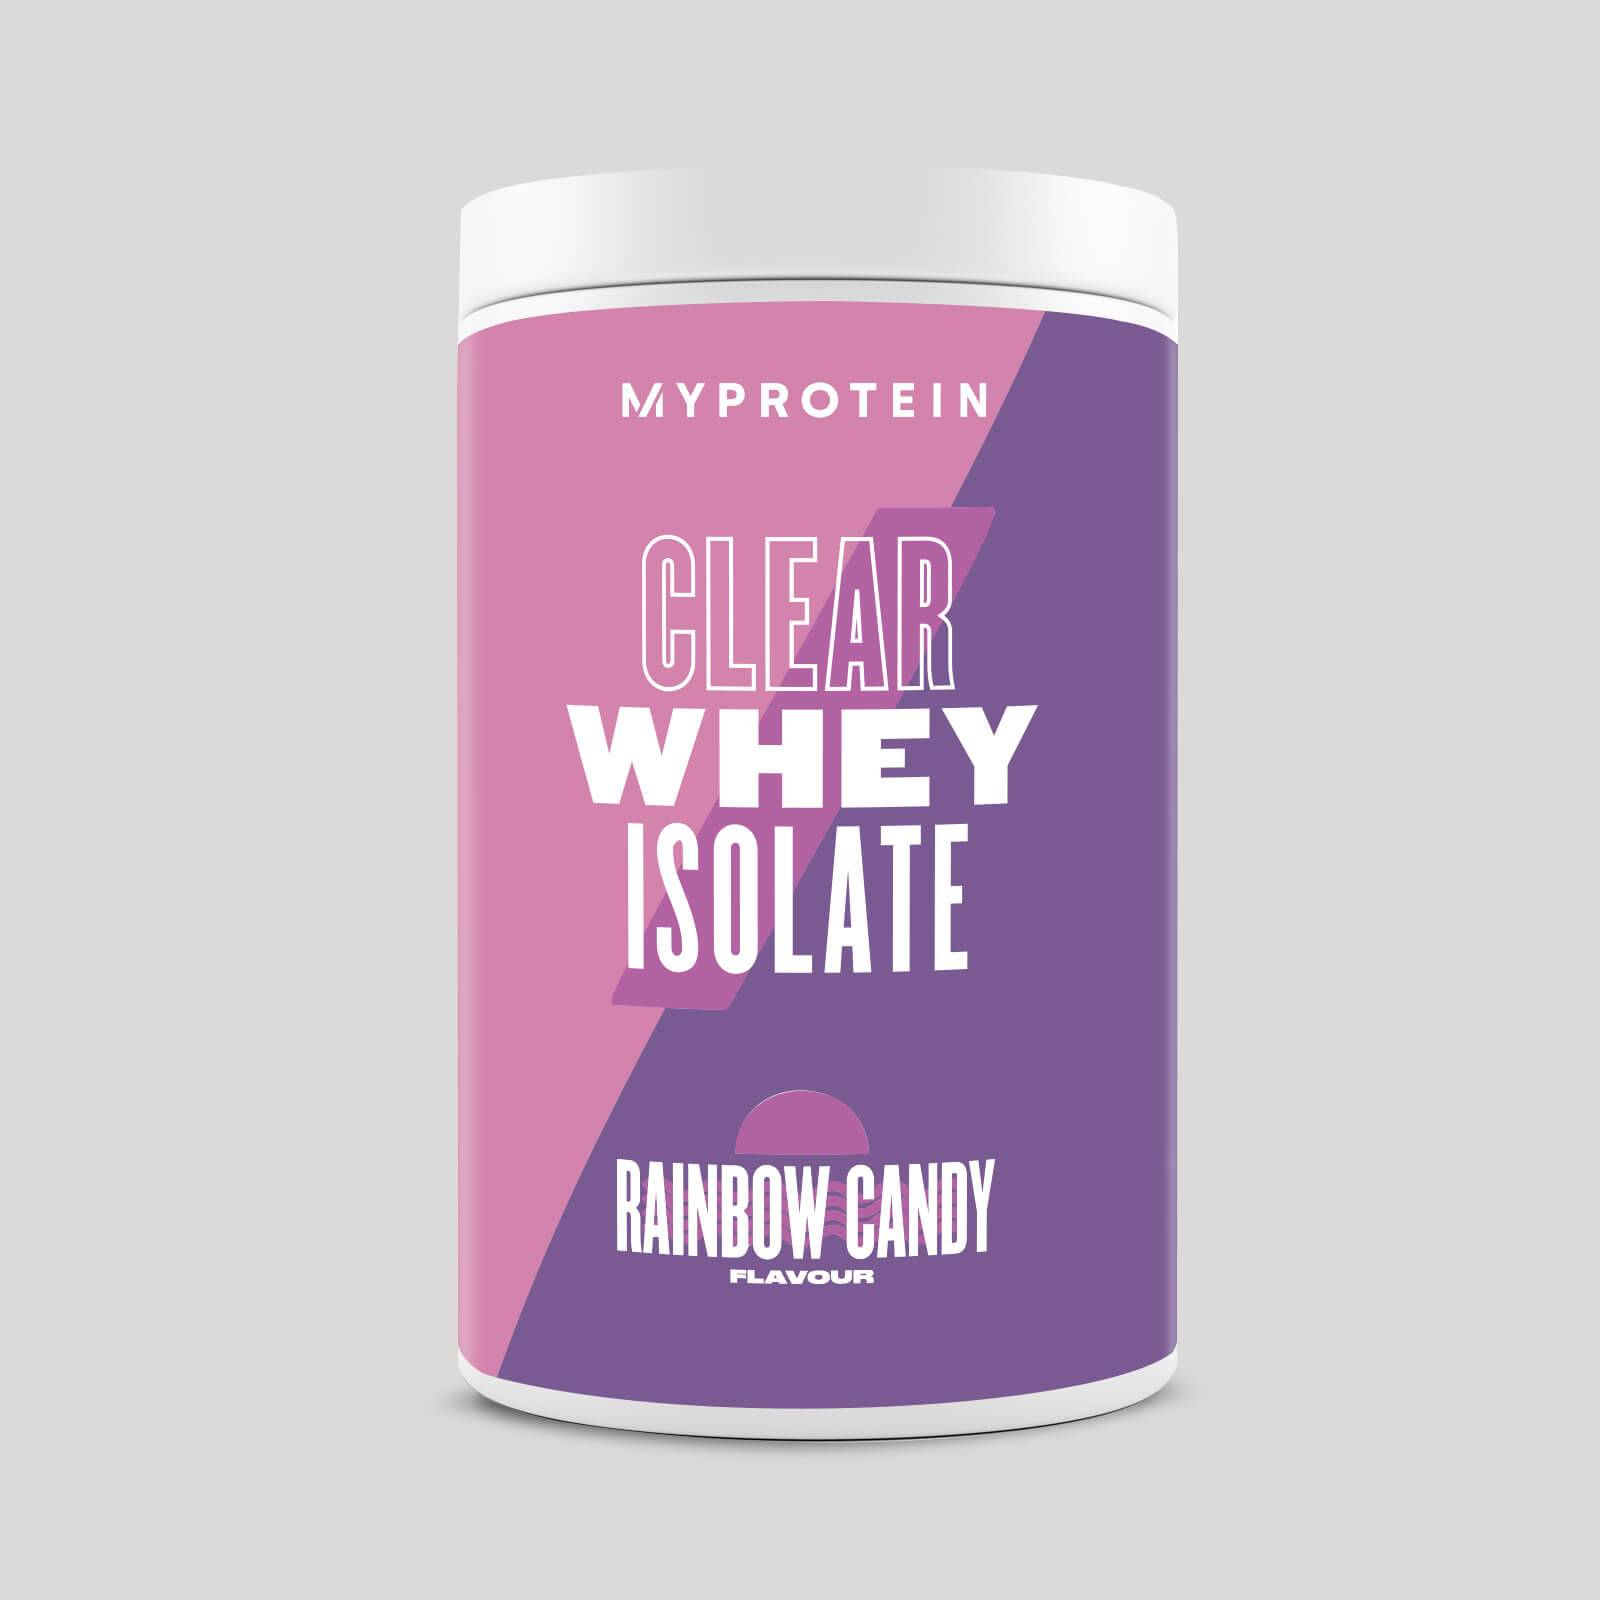 Myprotein Clear Whey Isolate - 20servings - Rainbow Candy